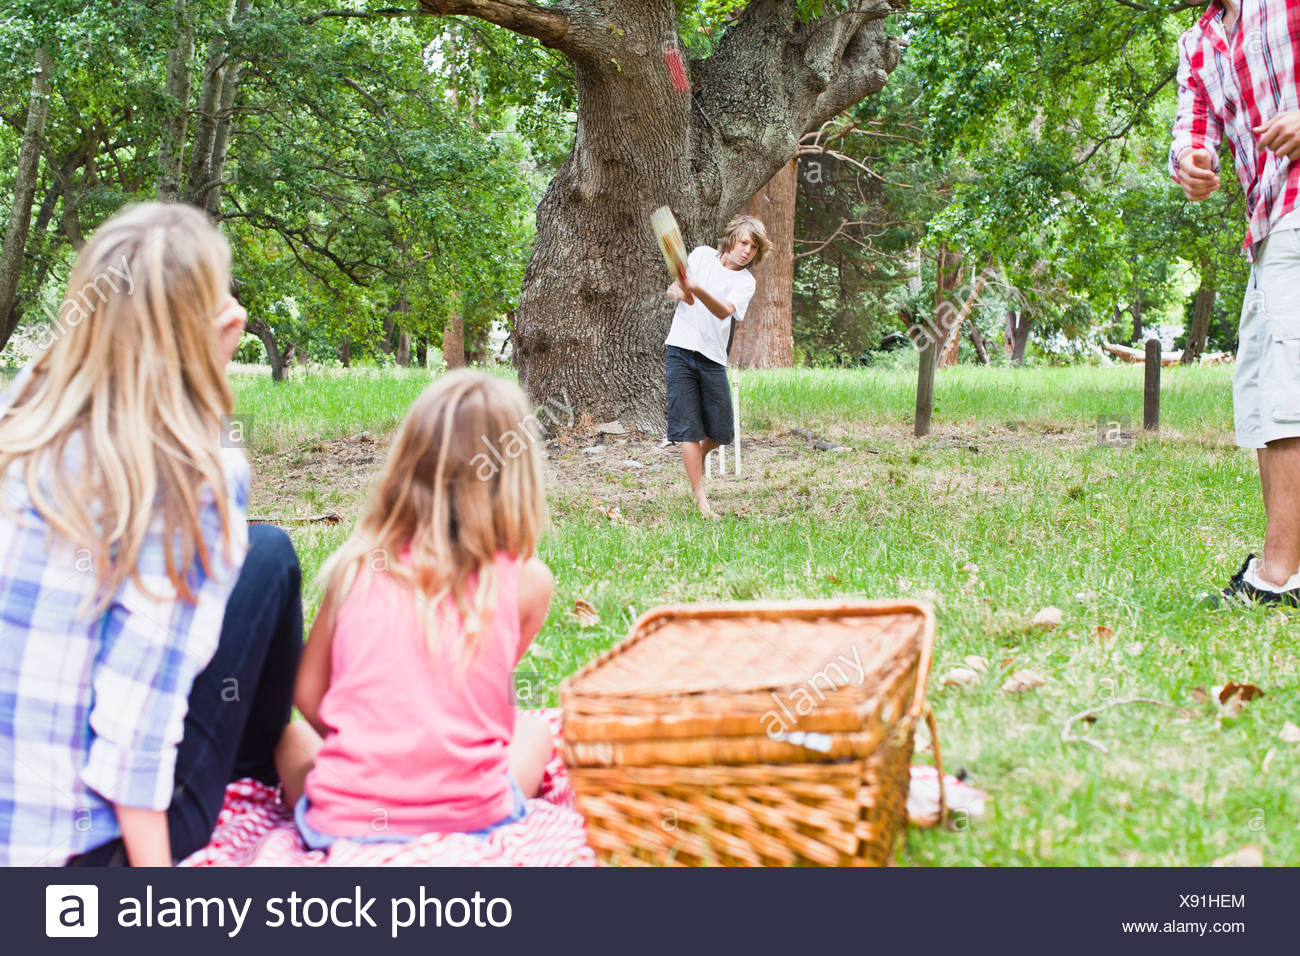 Family relaxing together in park - Stock Image